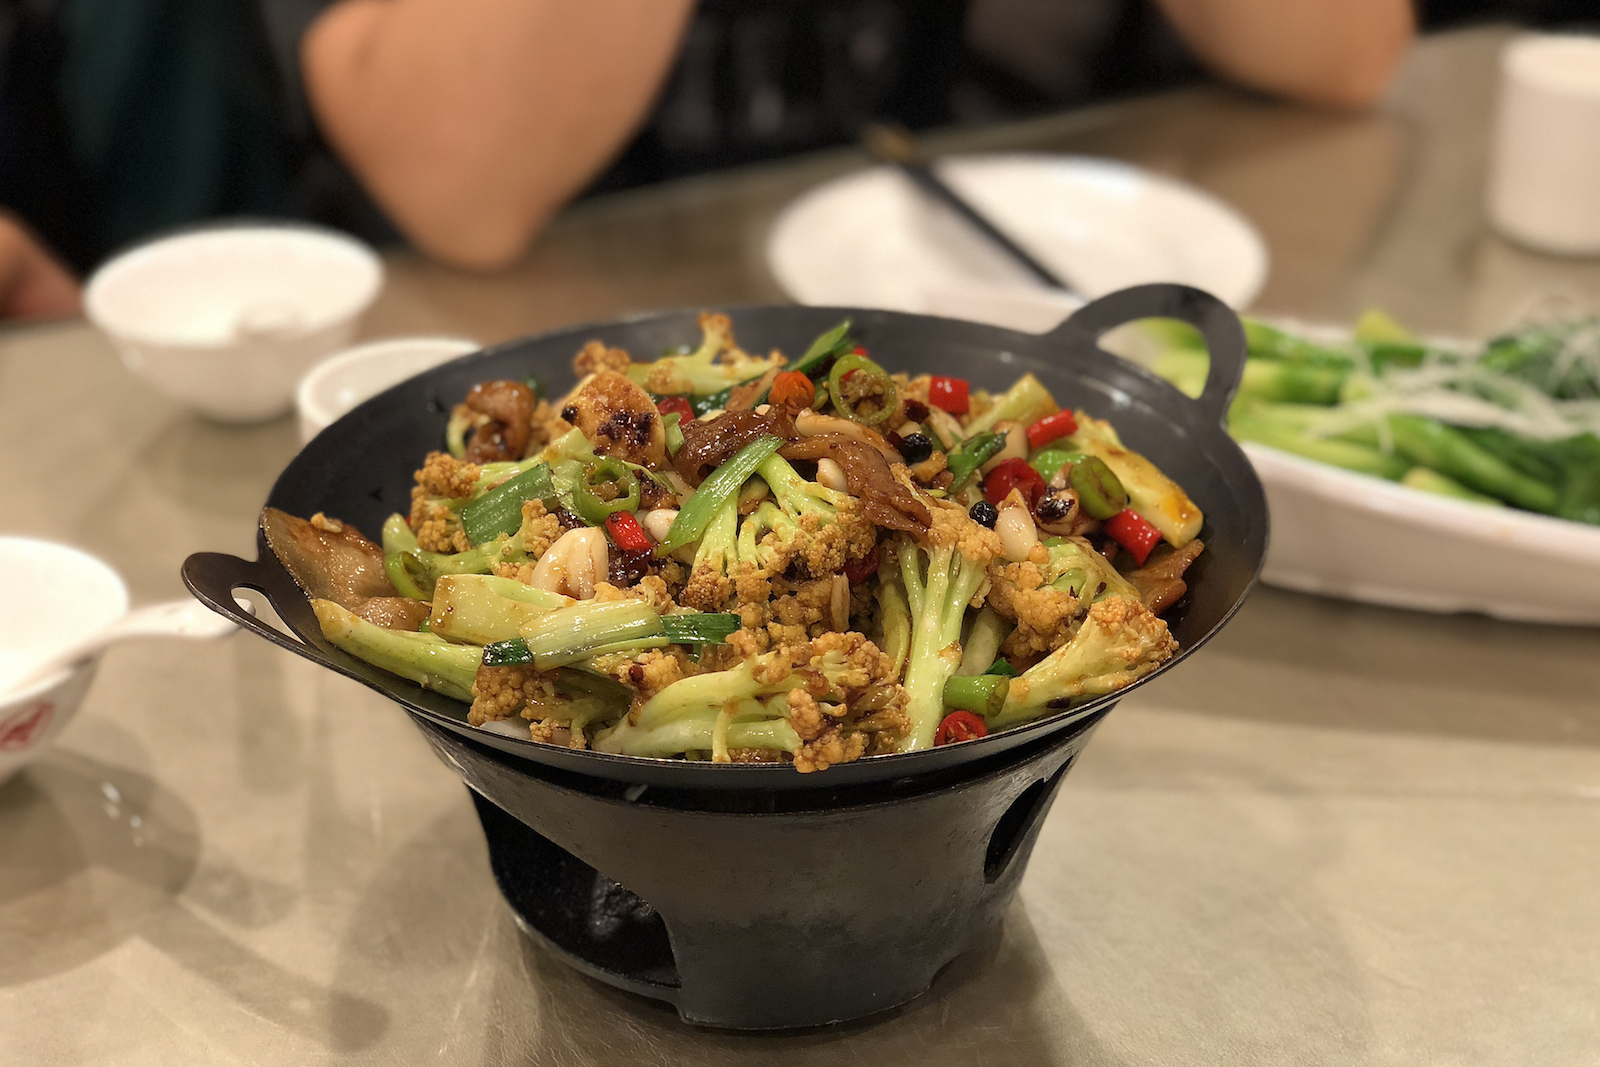 One of my new loves on this trip - Chinese cauliflower w/ hot peppers, fried pork belly, and  a lot  of garlic